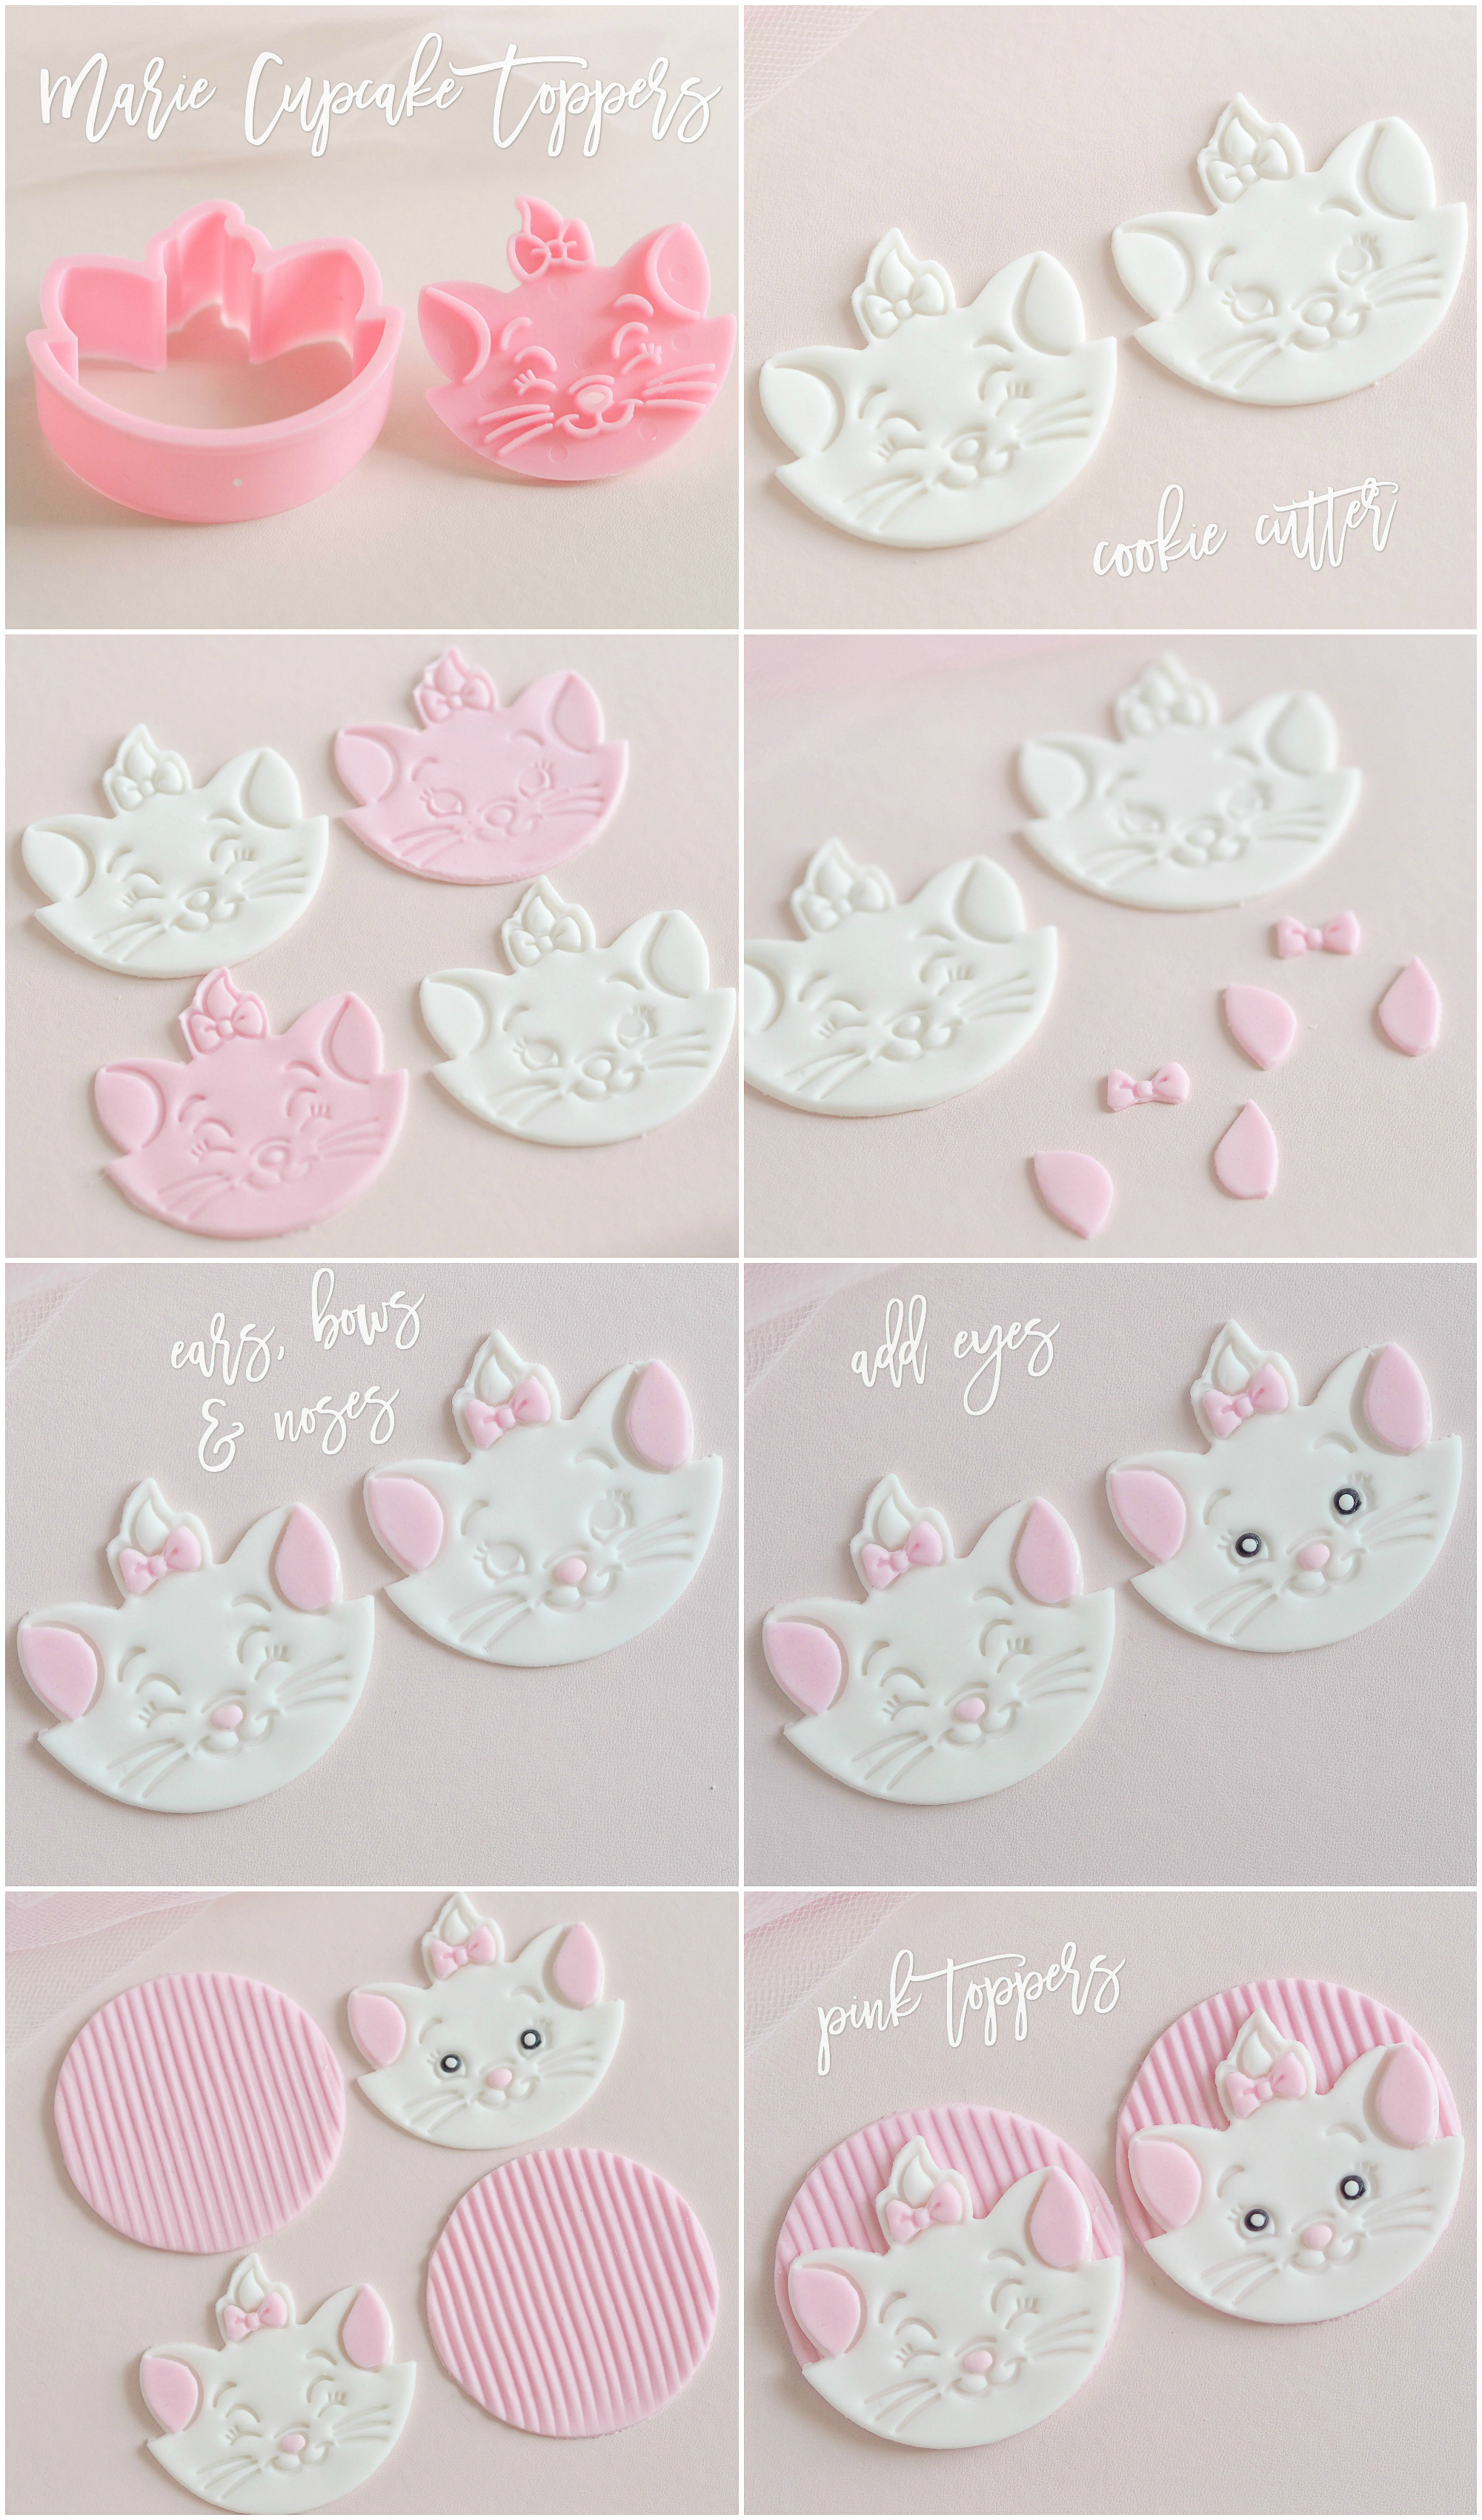 How To: Darling Disney Marie Cupcakes, Fondant Toppers Tutorial | Love Catherine